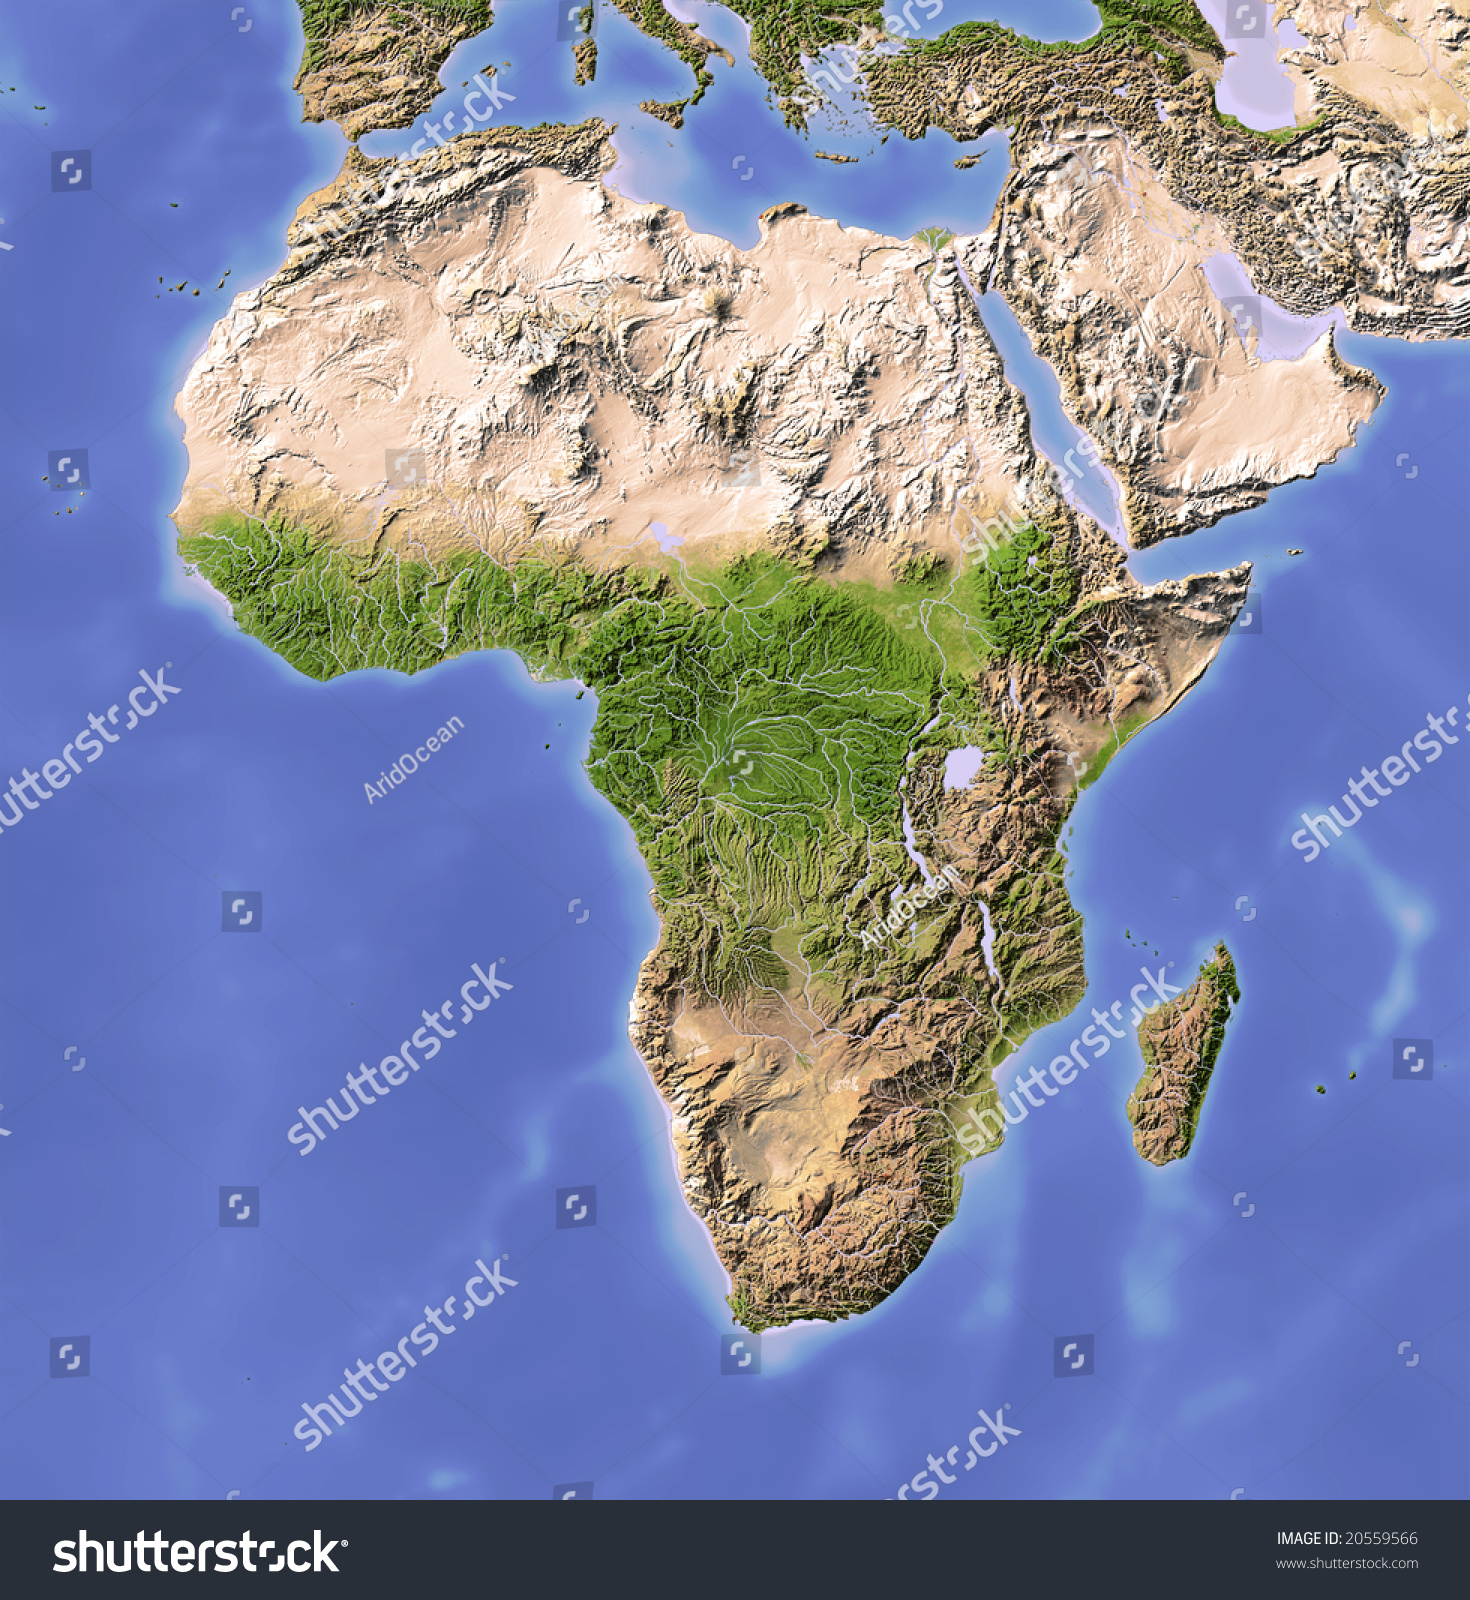 Relief map colored according to vegetation projection data source